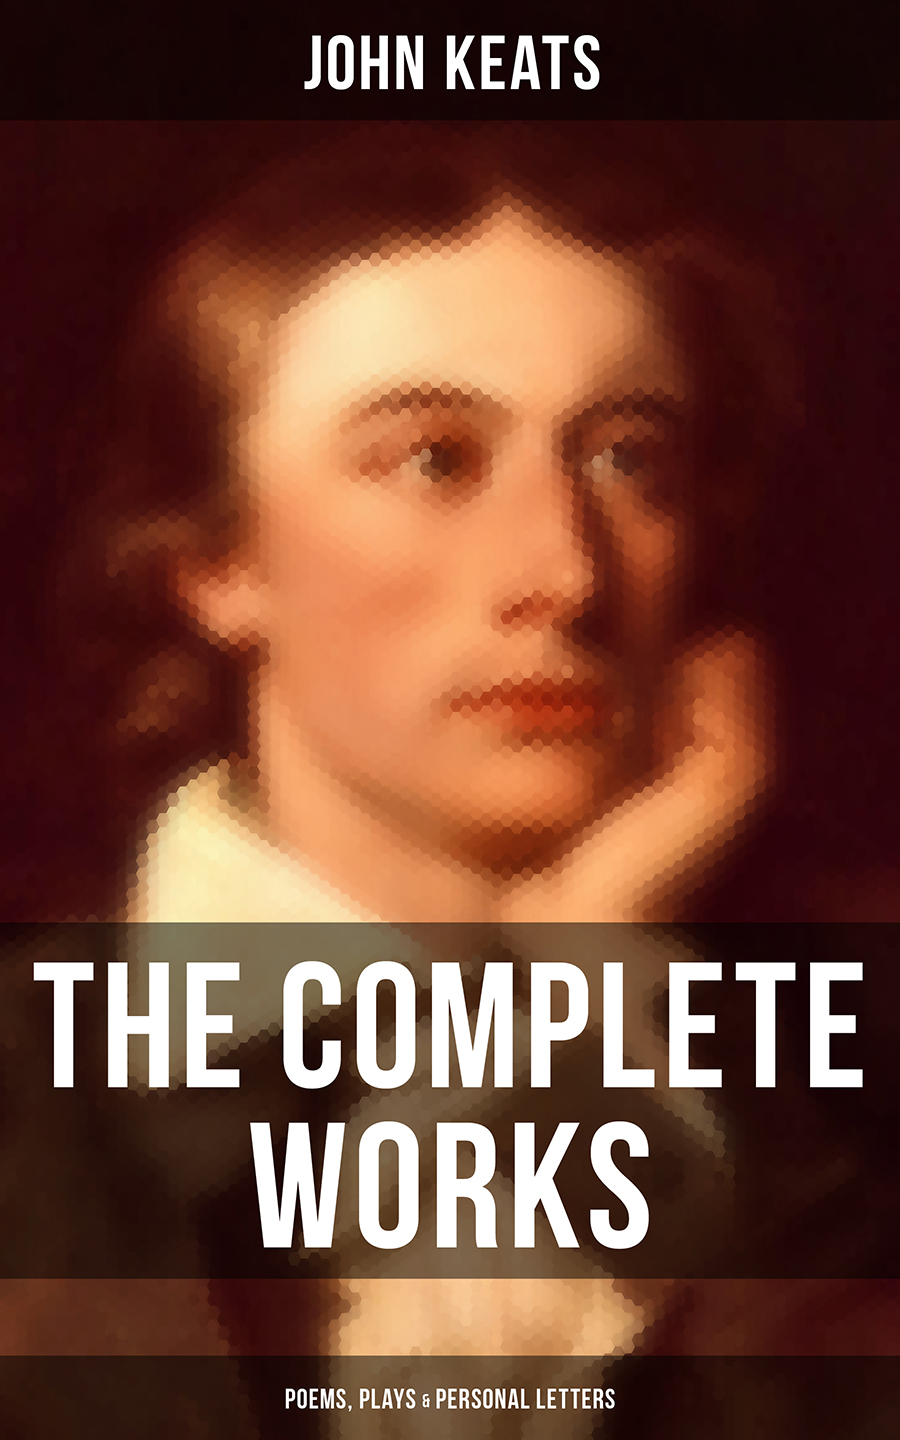 John Keats The Complete Works of John Keats: Poems, Plays & Personal Letters complete poems and selected letters of john keats